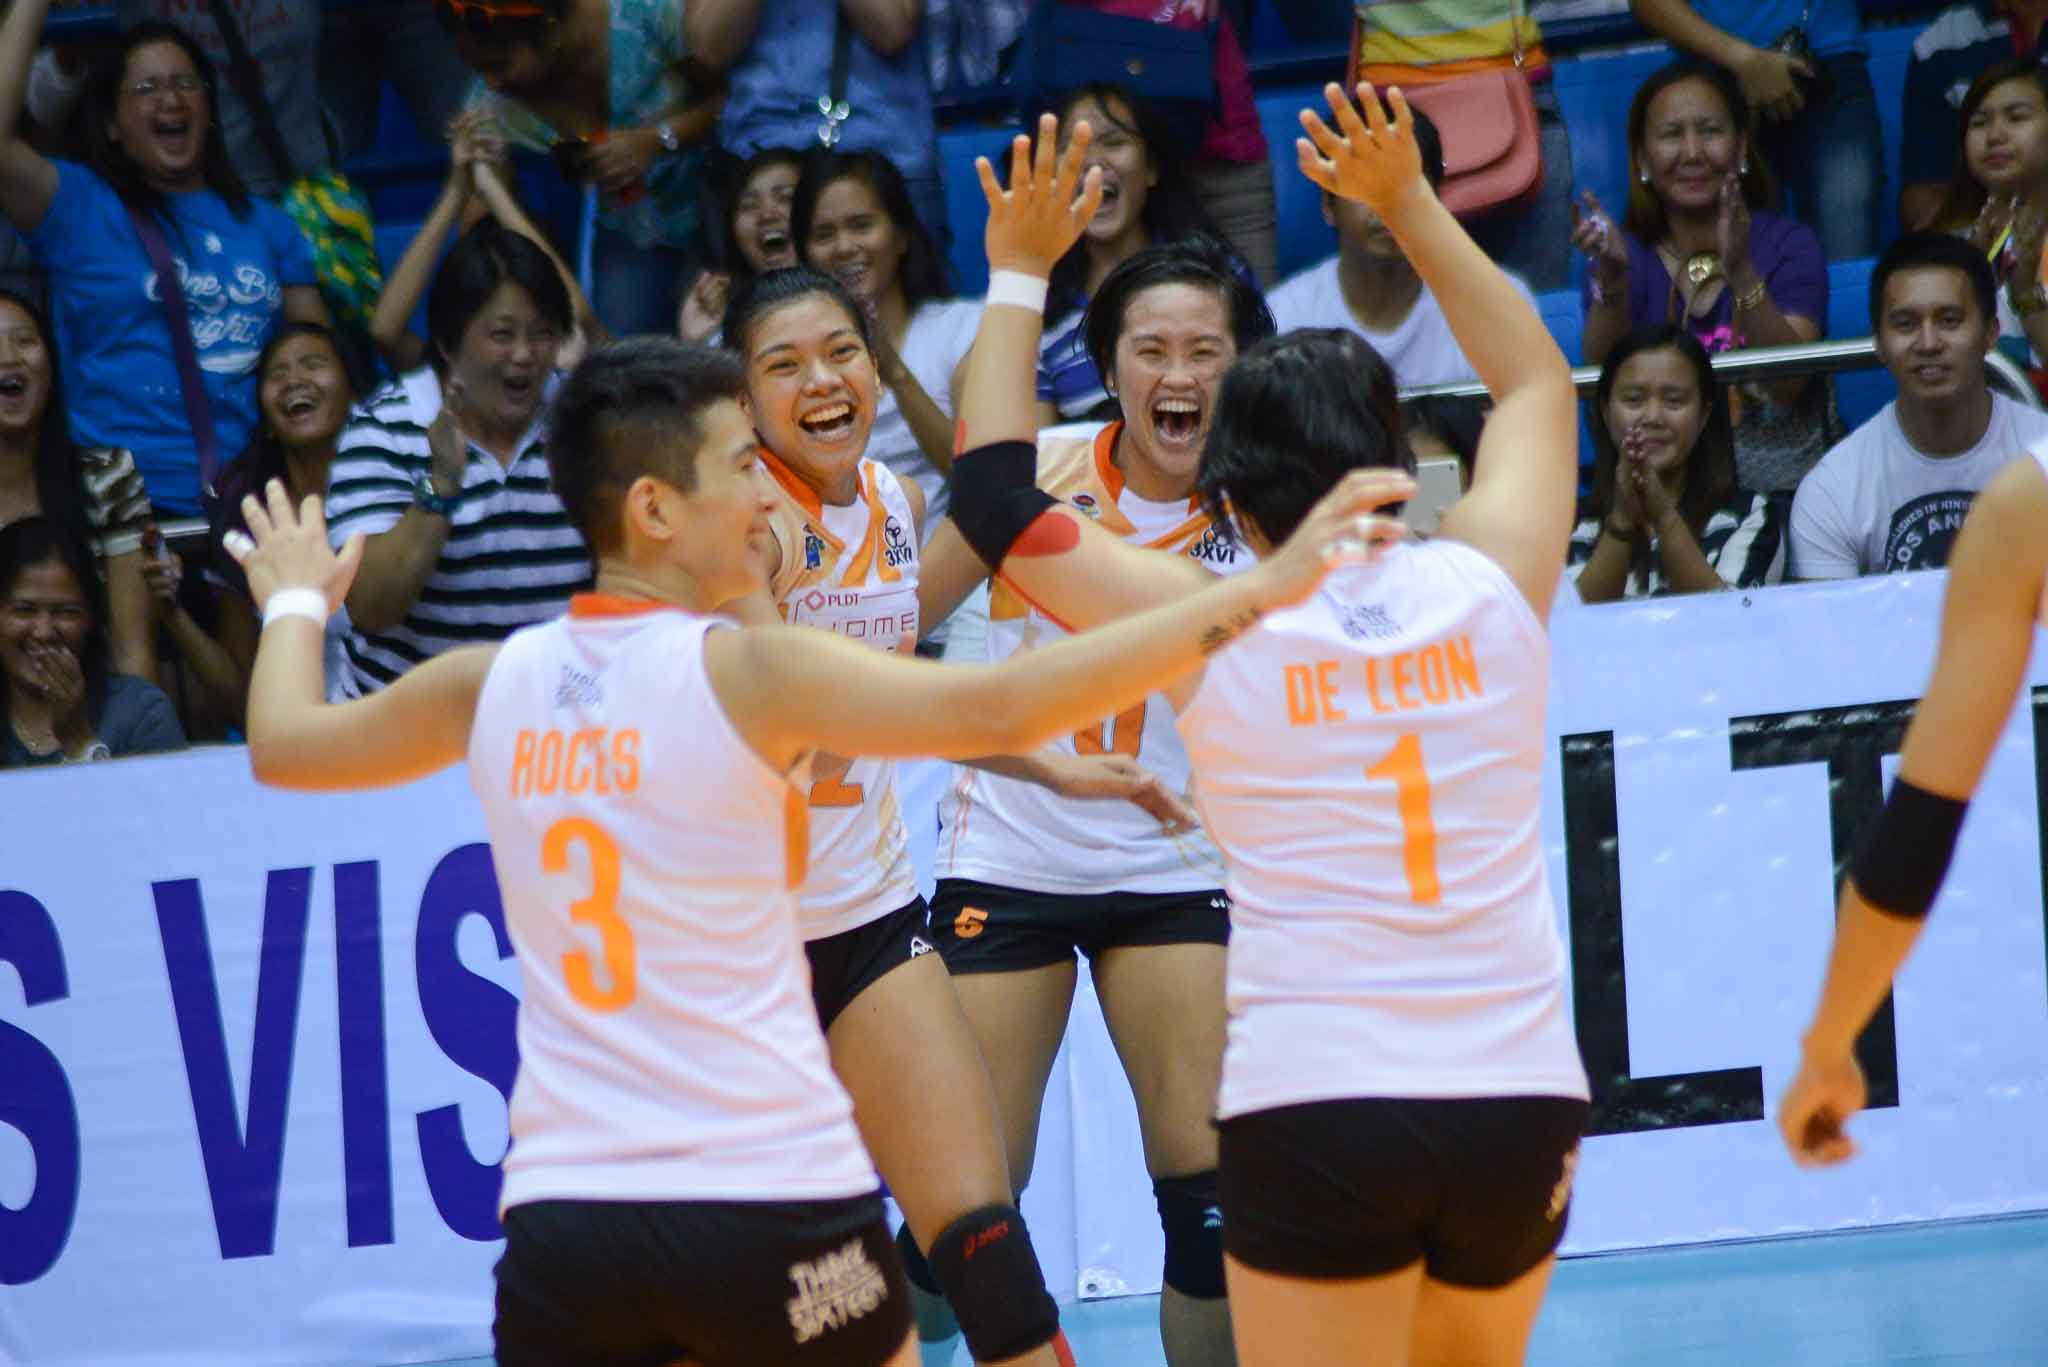 SVL-Semis-PLDTvsArmy-2386 PLDT officially comes back home to PVL News PVL Volleyball  - philippine sports news